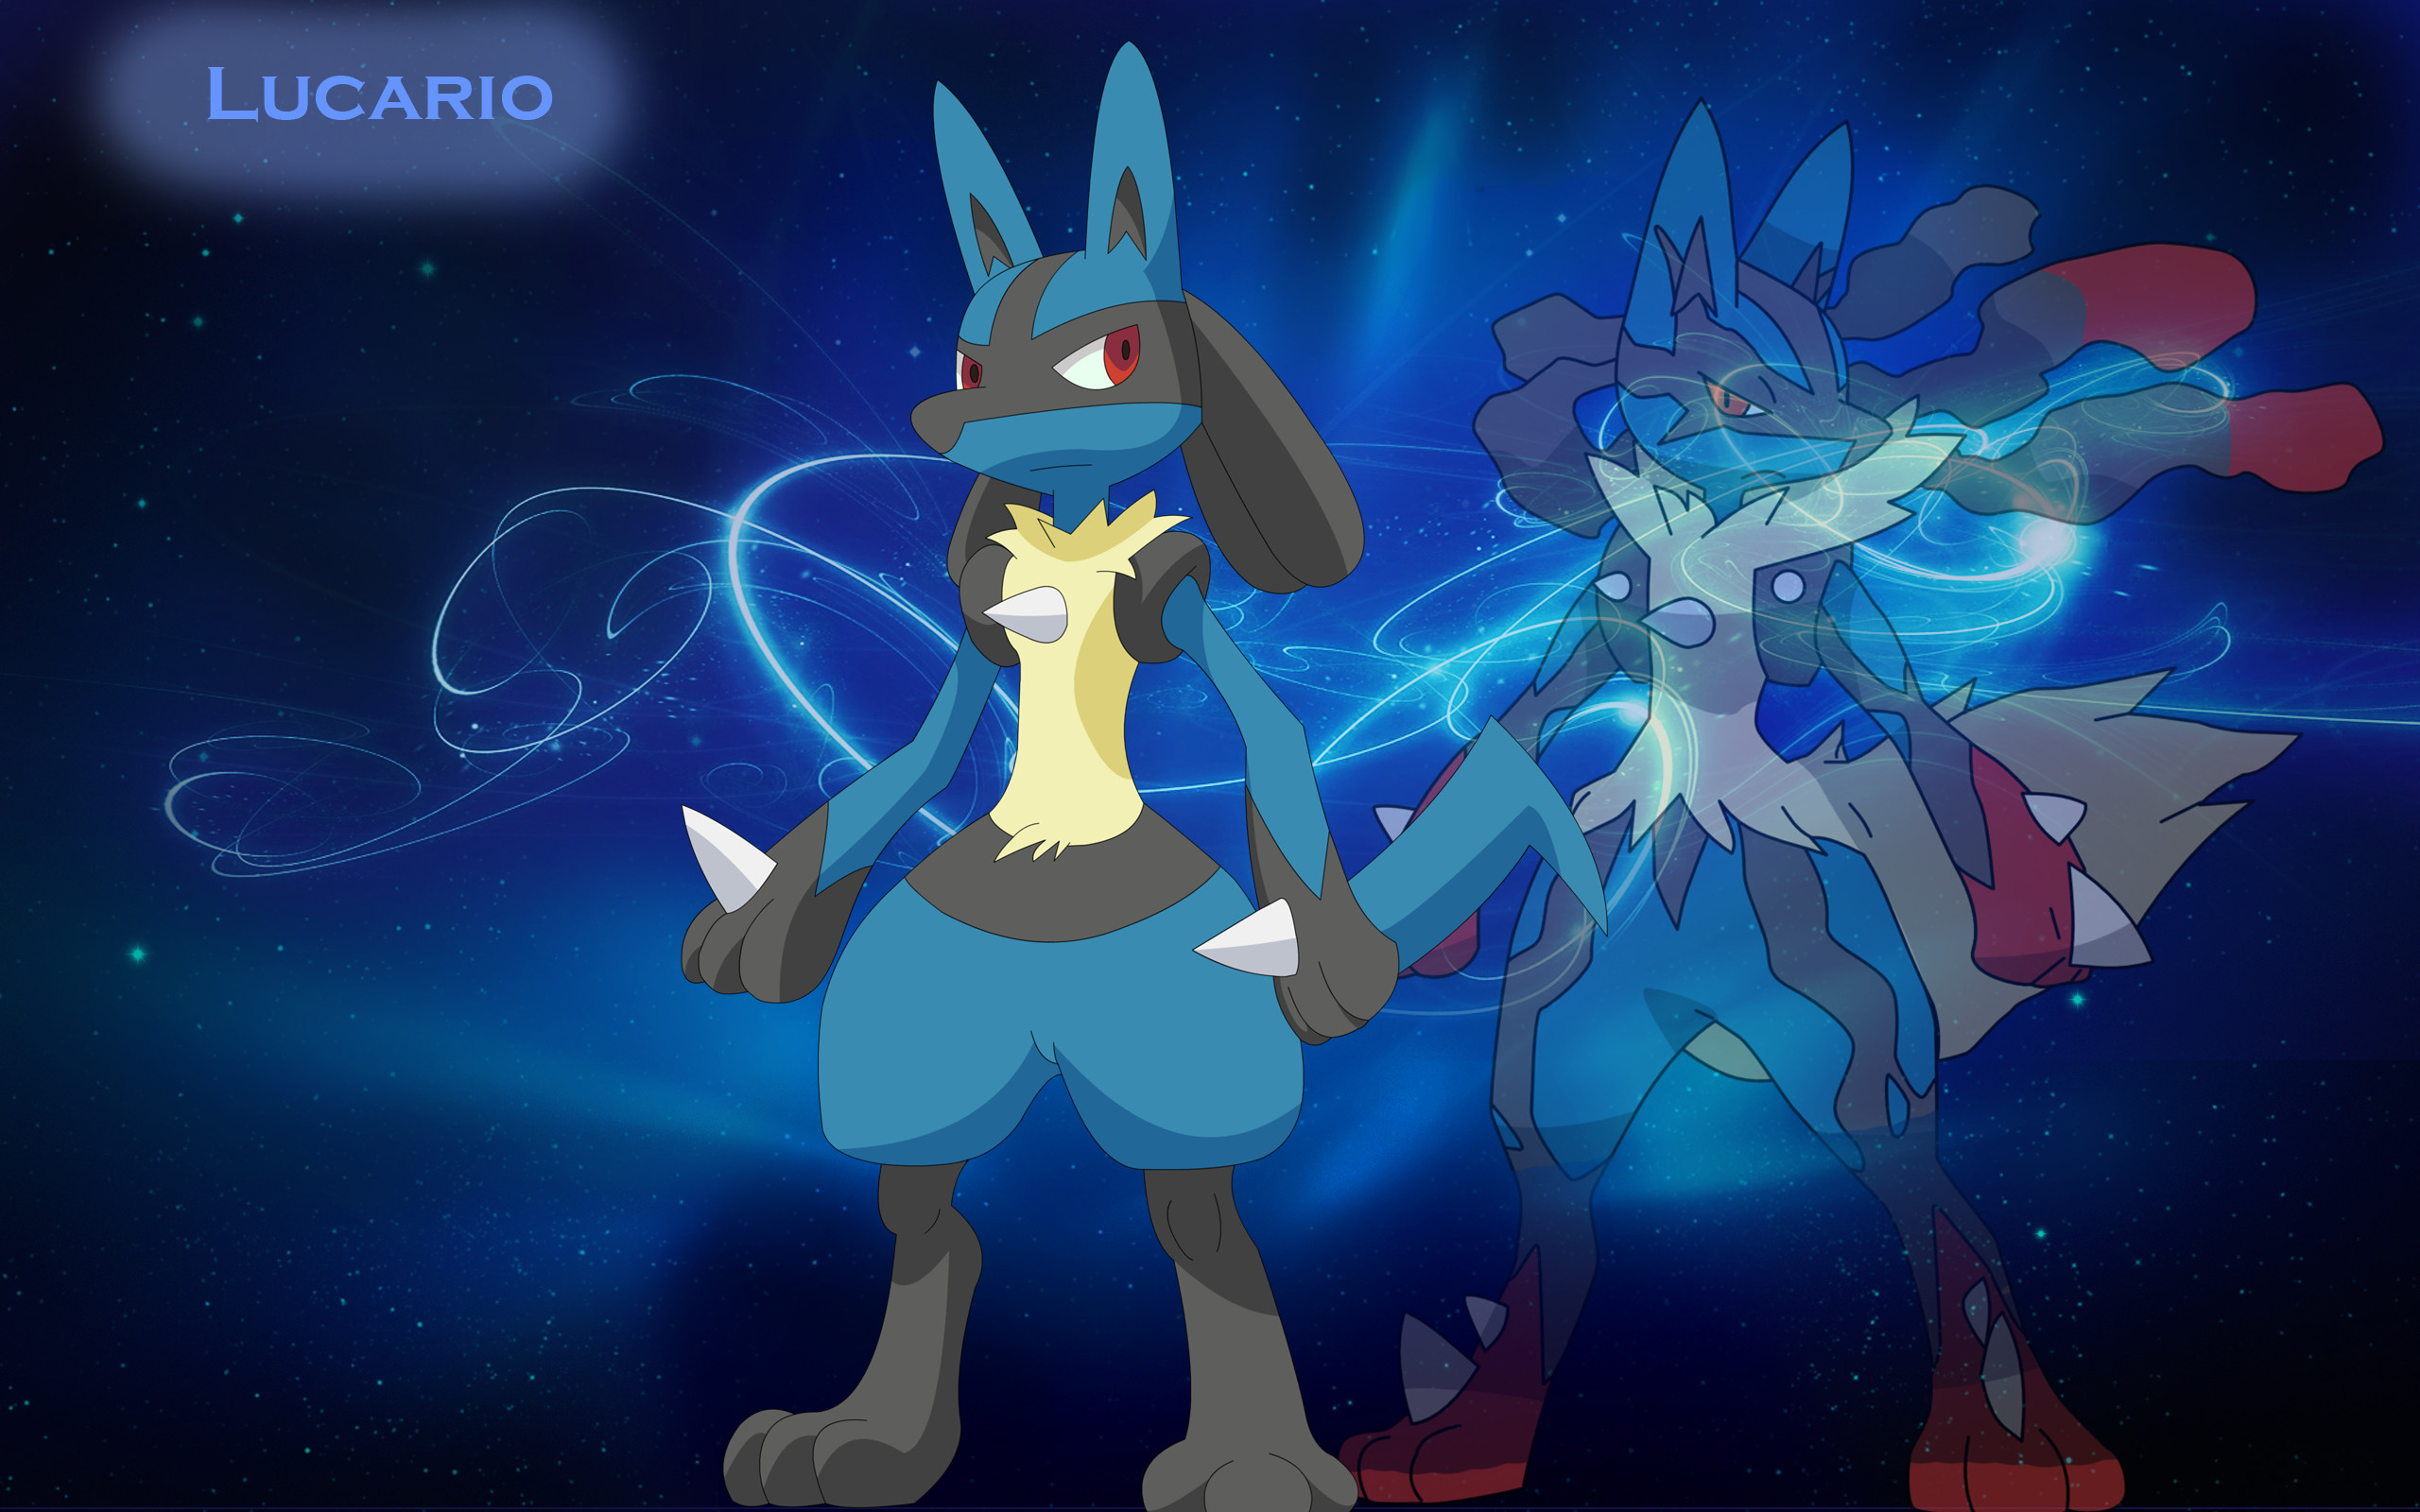 2560x1600 Pokemon Lucario Wallpaper.